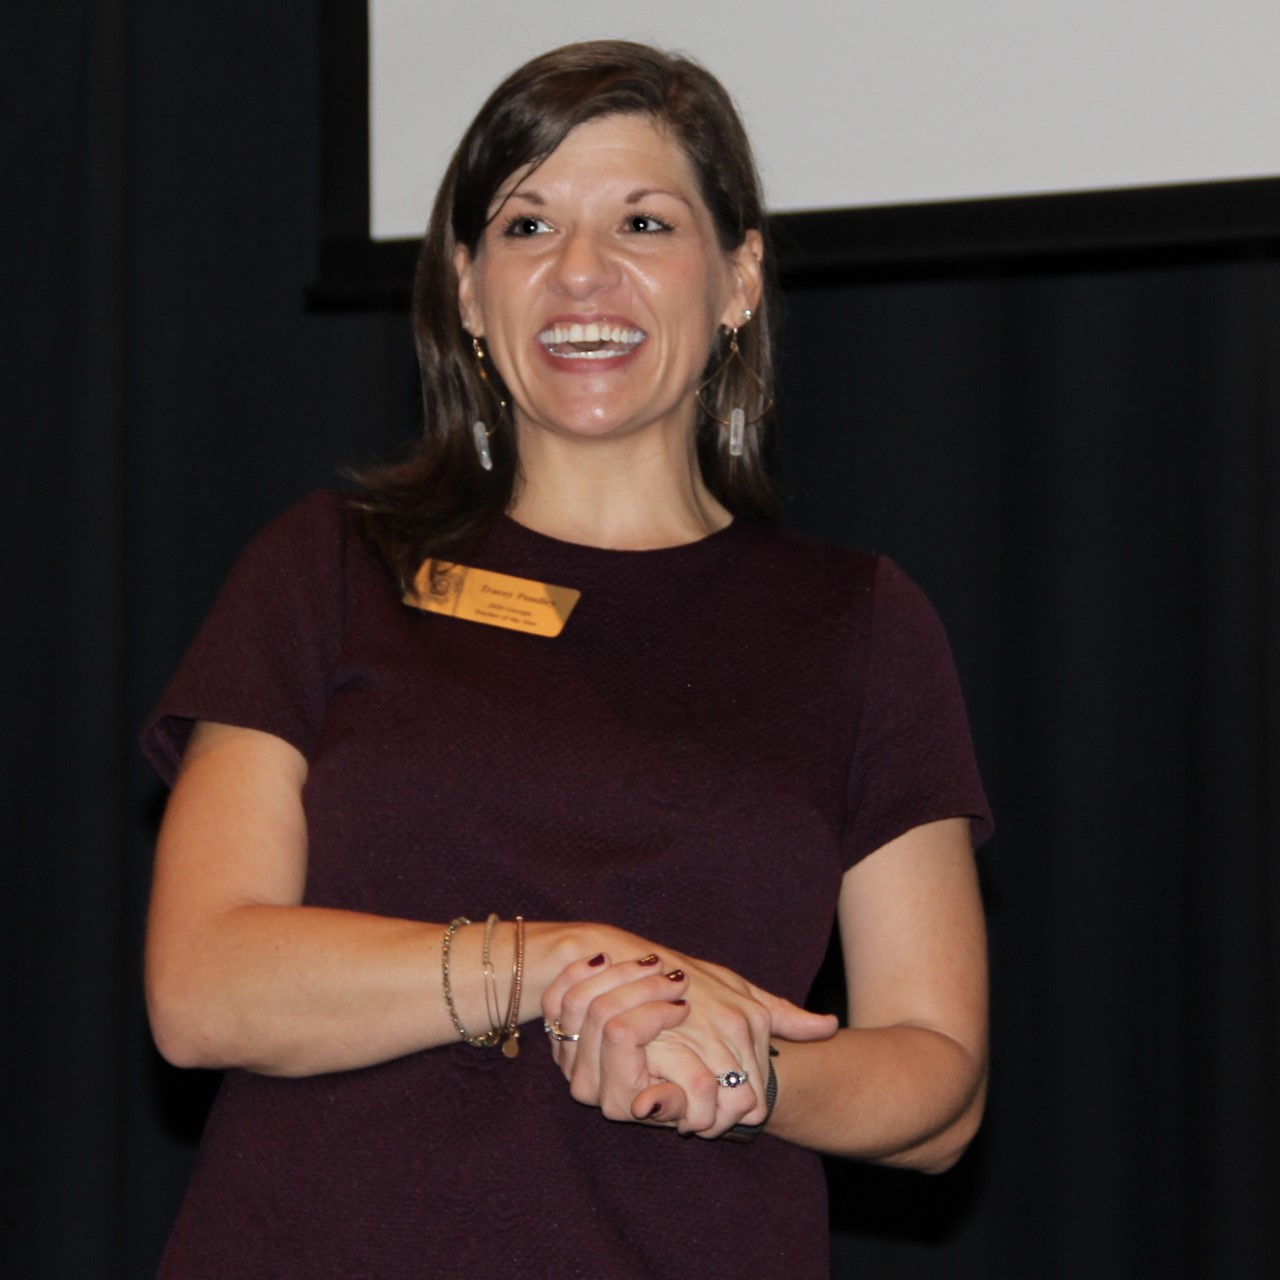 Georgia Teacher of the Year Tracey Pendley shared her experiences in the education sector Wednesday in an open session at Gordon State College.